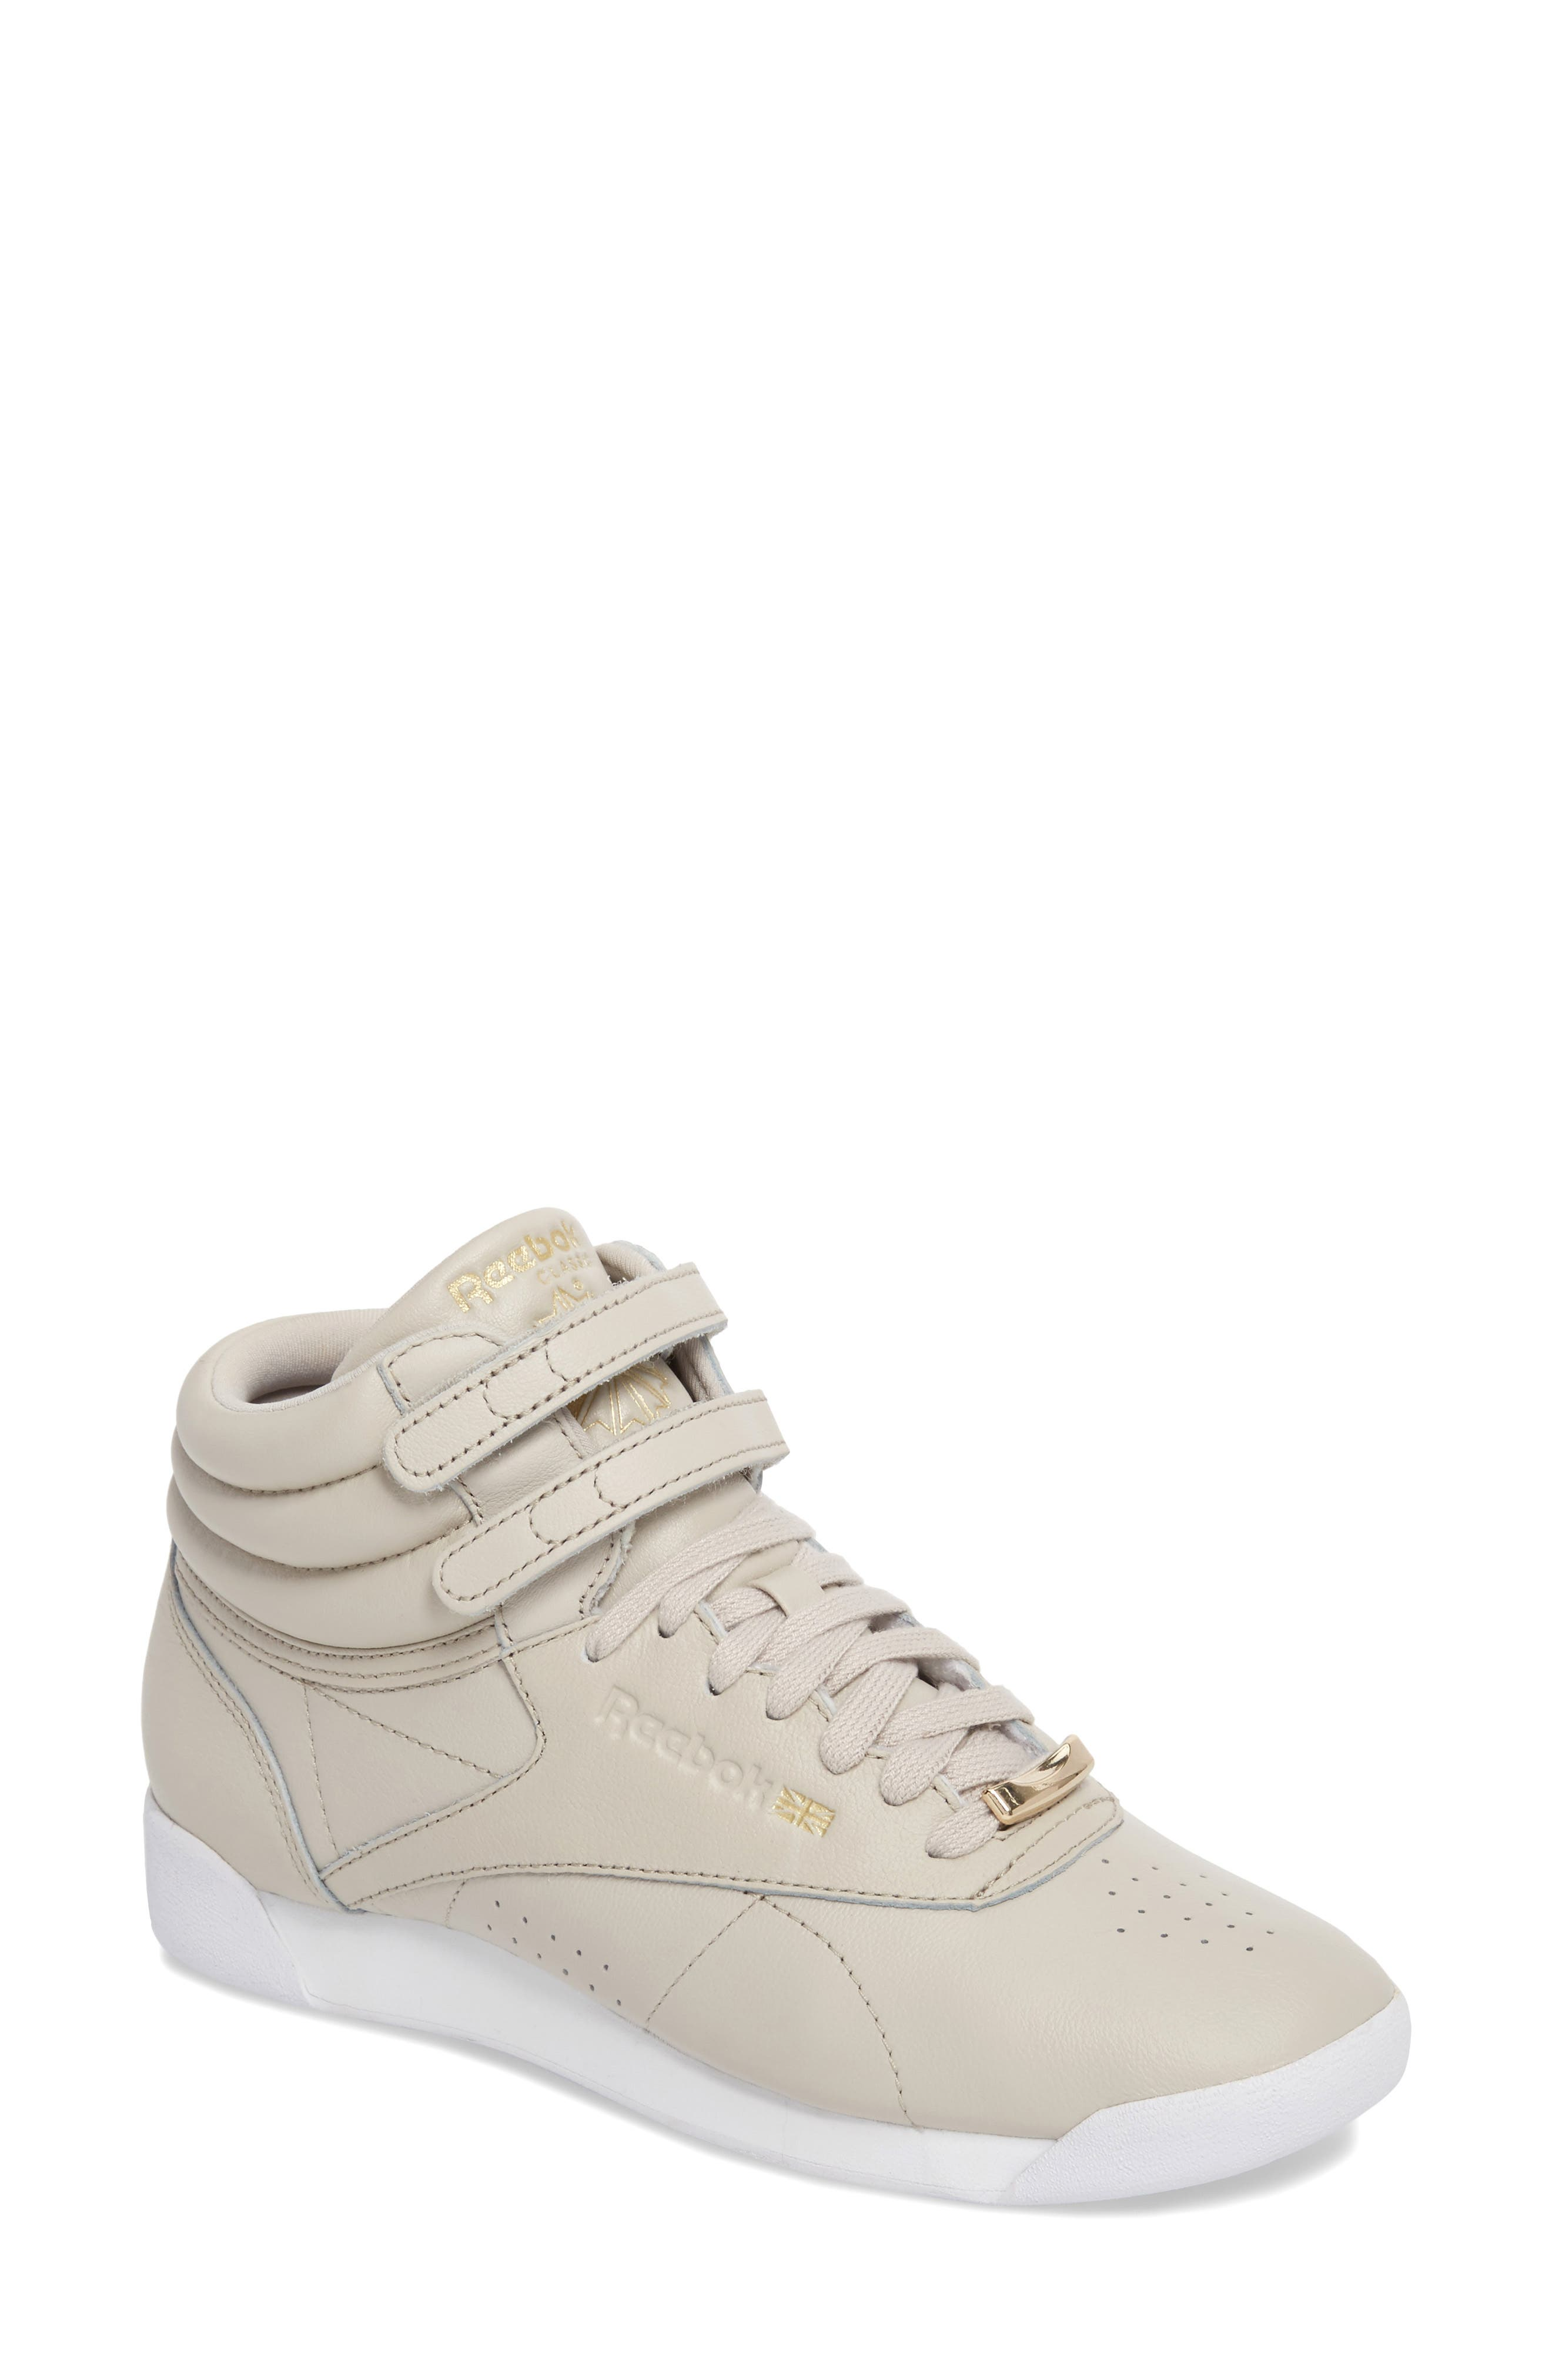 Freestyle Hi Muted Sneaker,                         Main,                         color, SANDSTONE/ WHITE